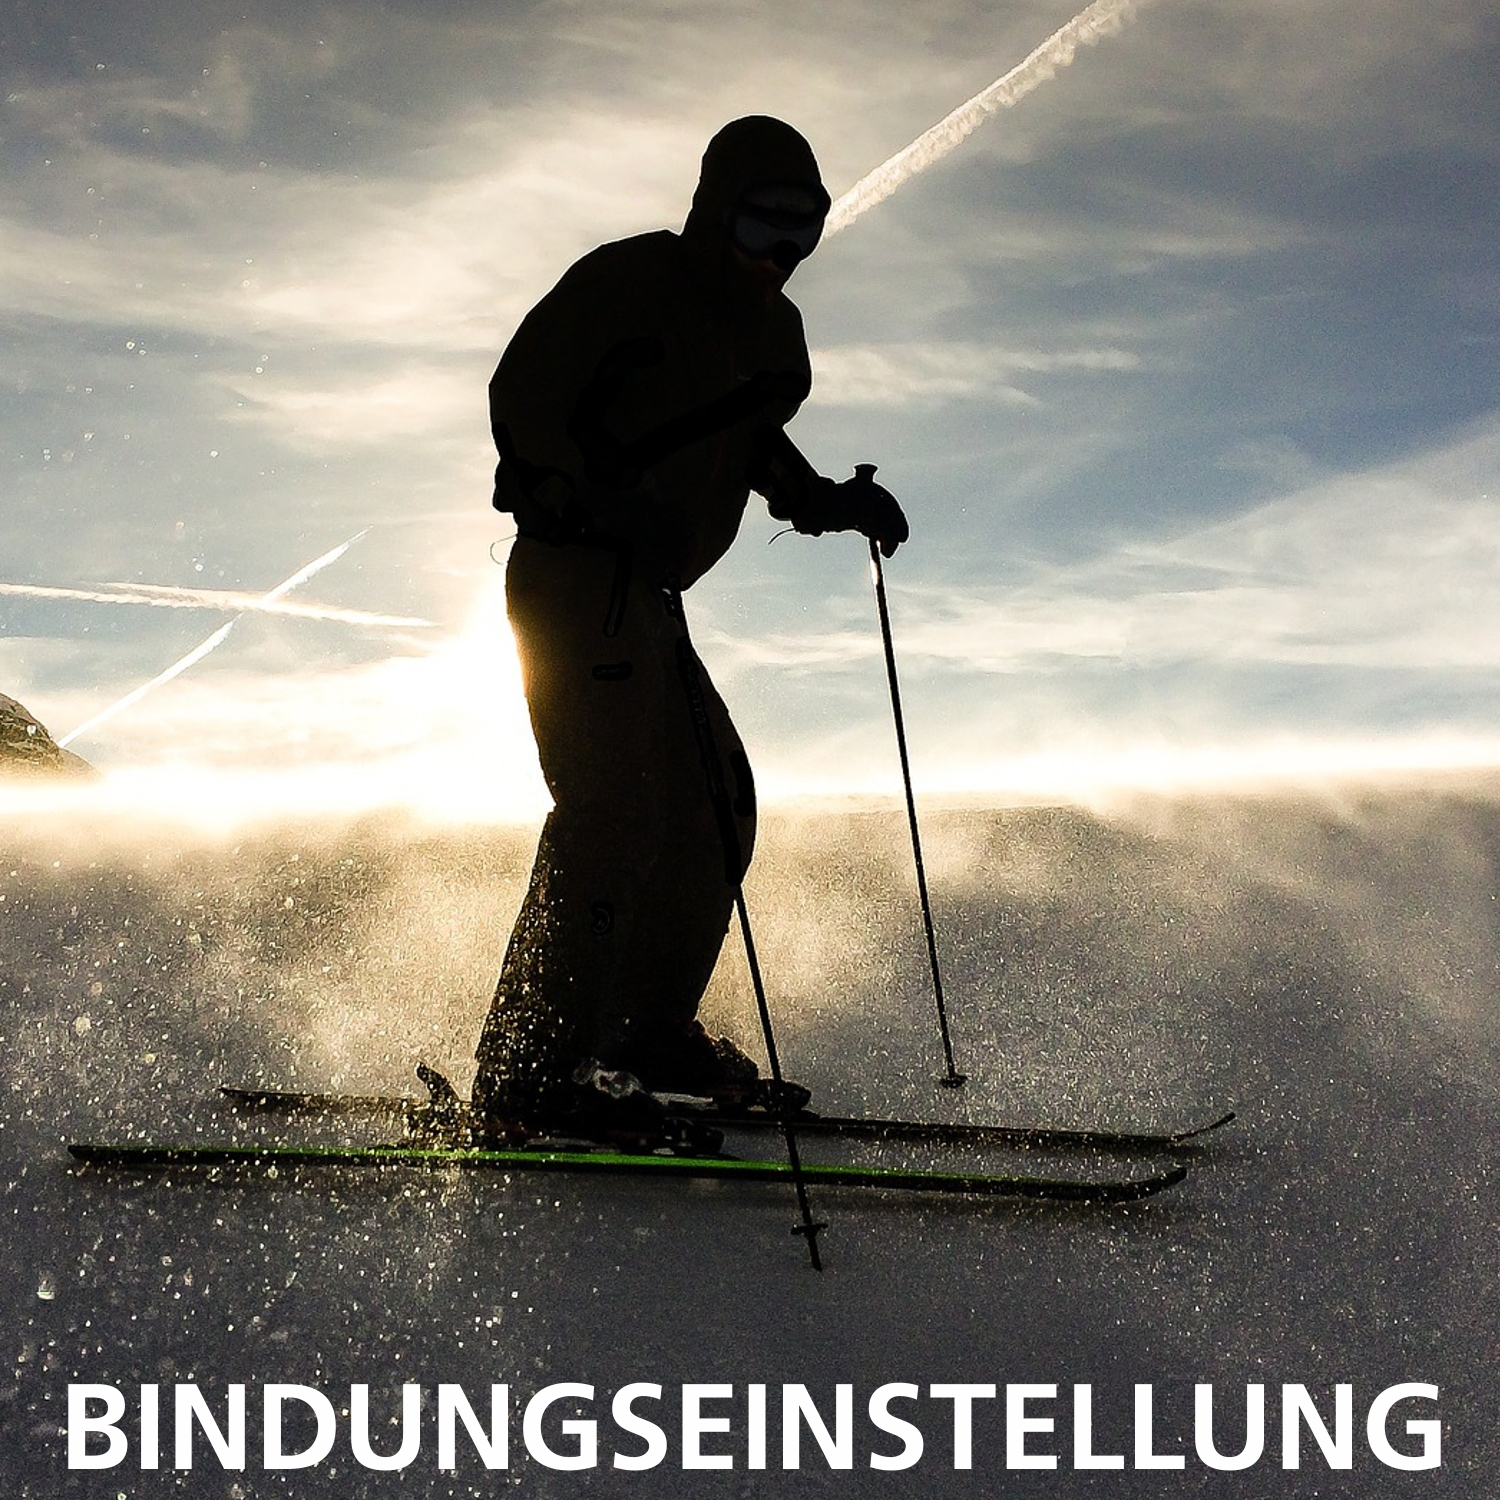 BINDUNGSEINSTELLUNG